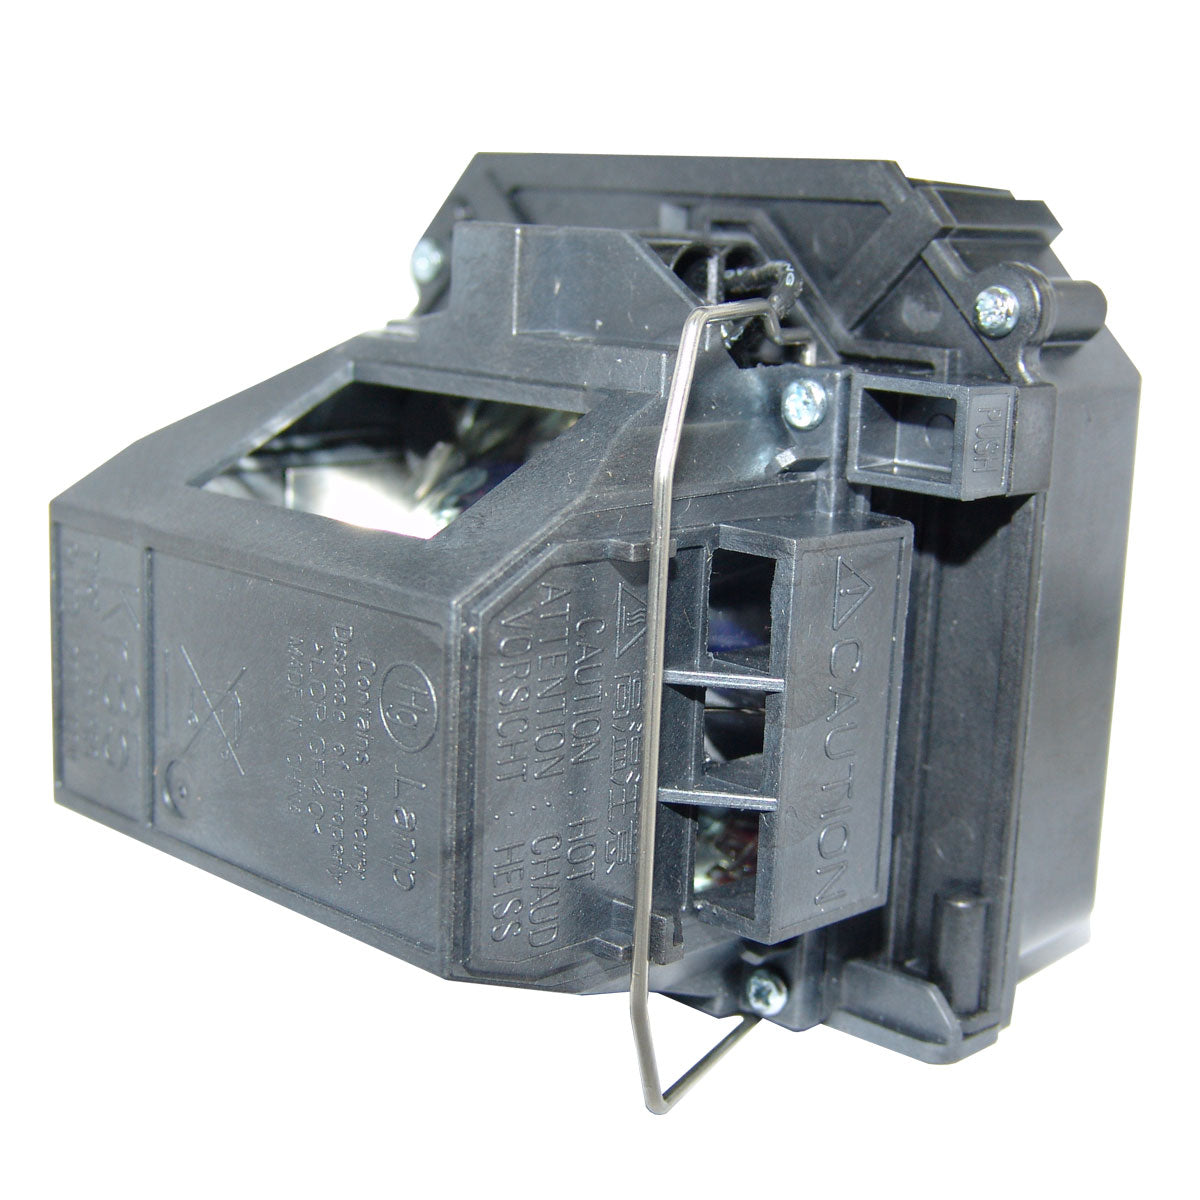 Epson ELPLP60 Philips Projector Lamp Module